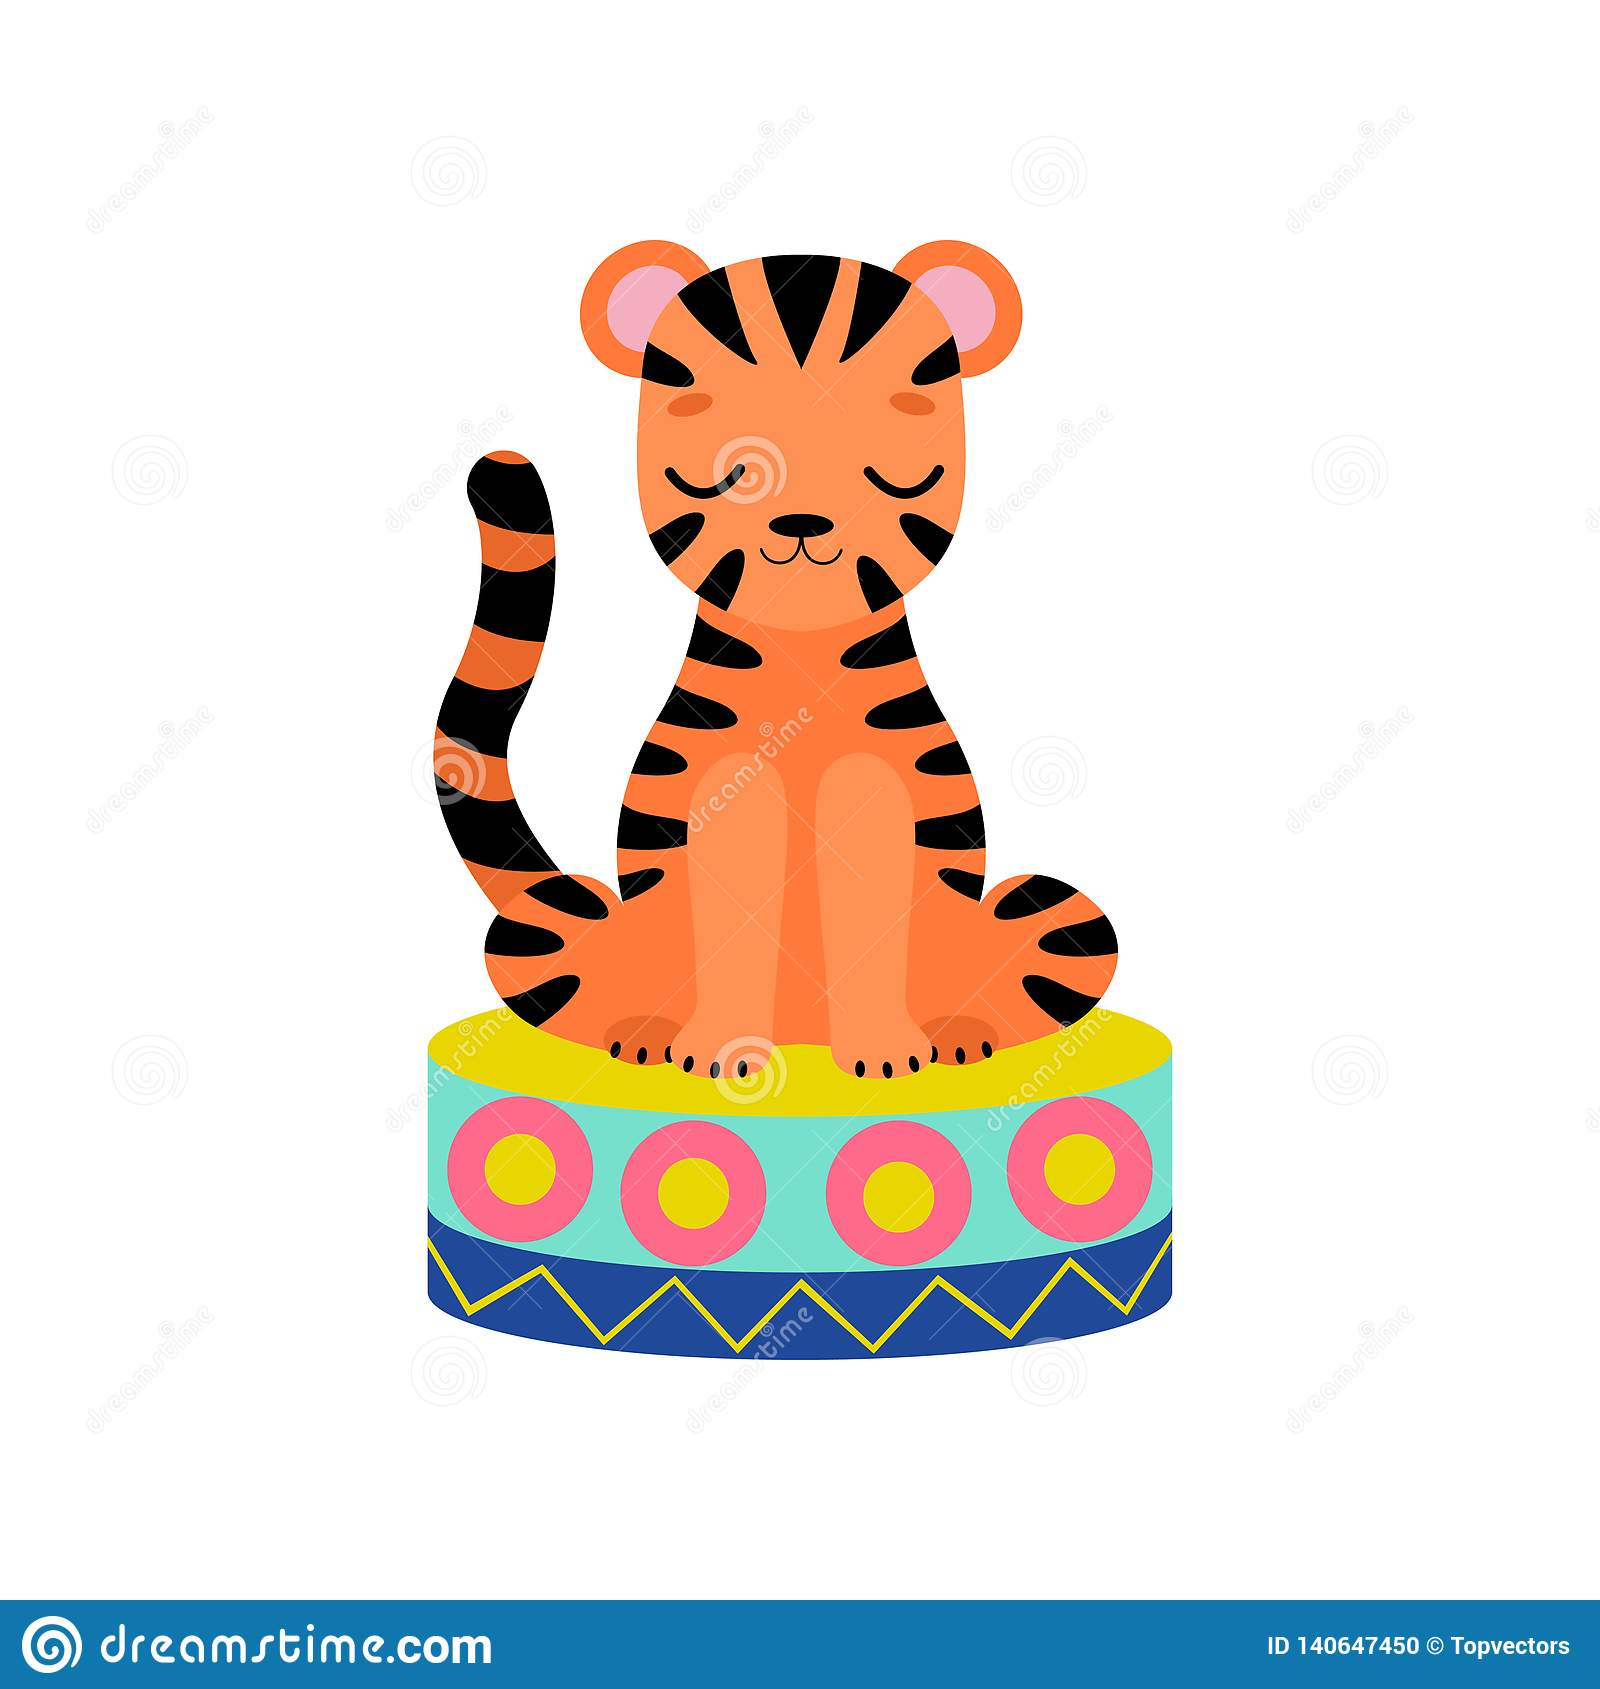 Cute Tiger Cub Sitting on Stage, Funny Animal Performing in Circus Show Vector Illustration